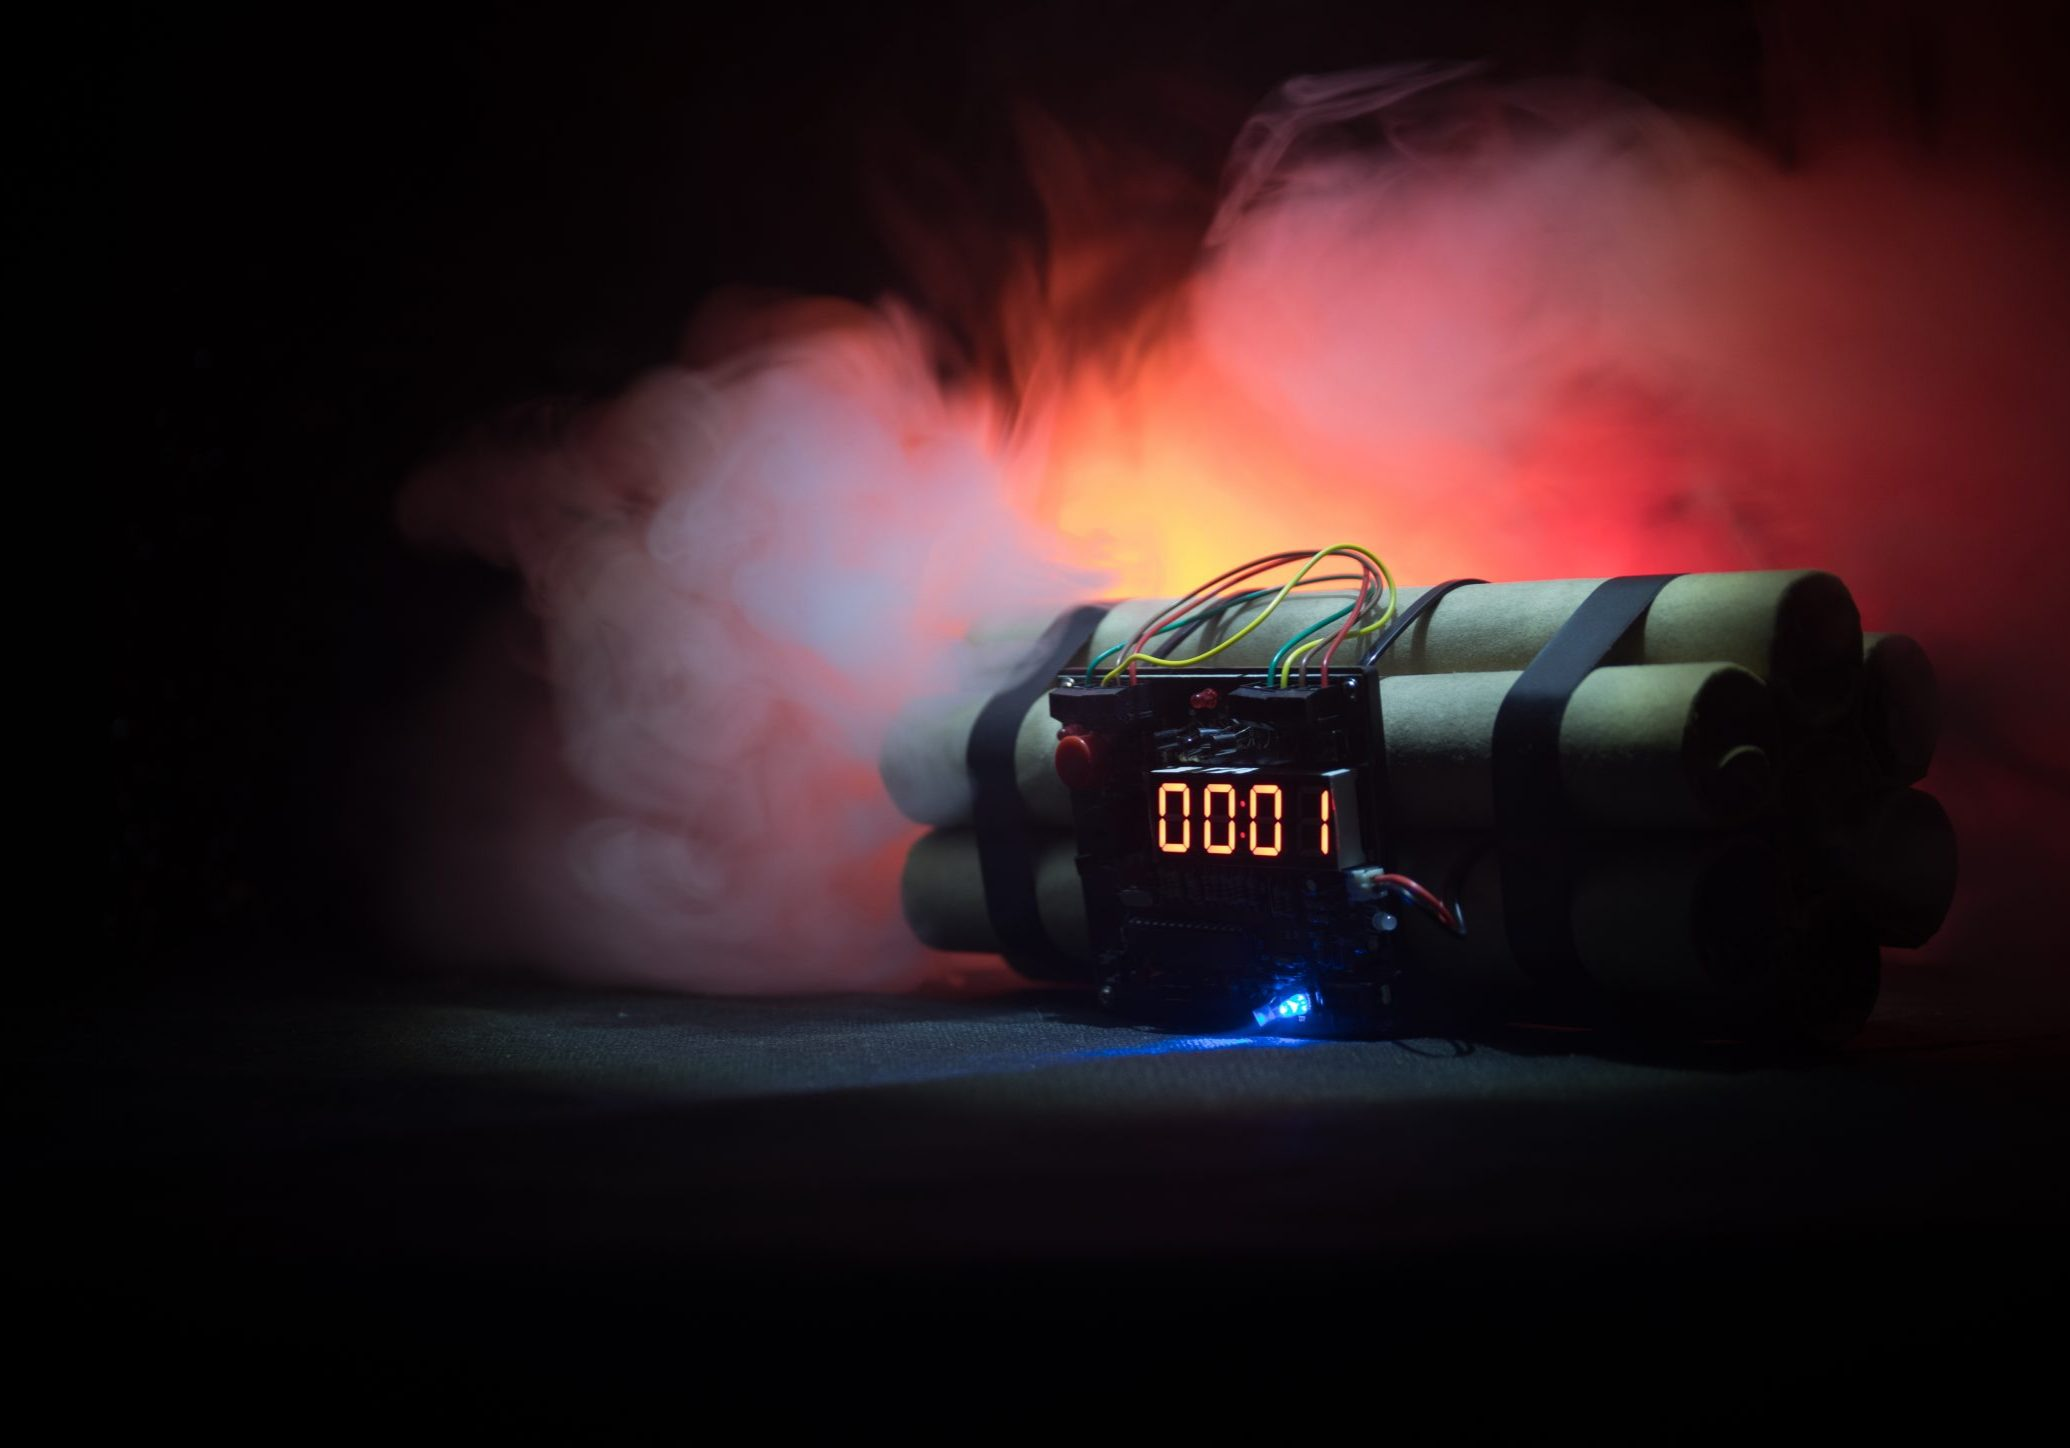 Photograph of a prop of dynamite with a countdown timer on the front and red smoke in the background